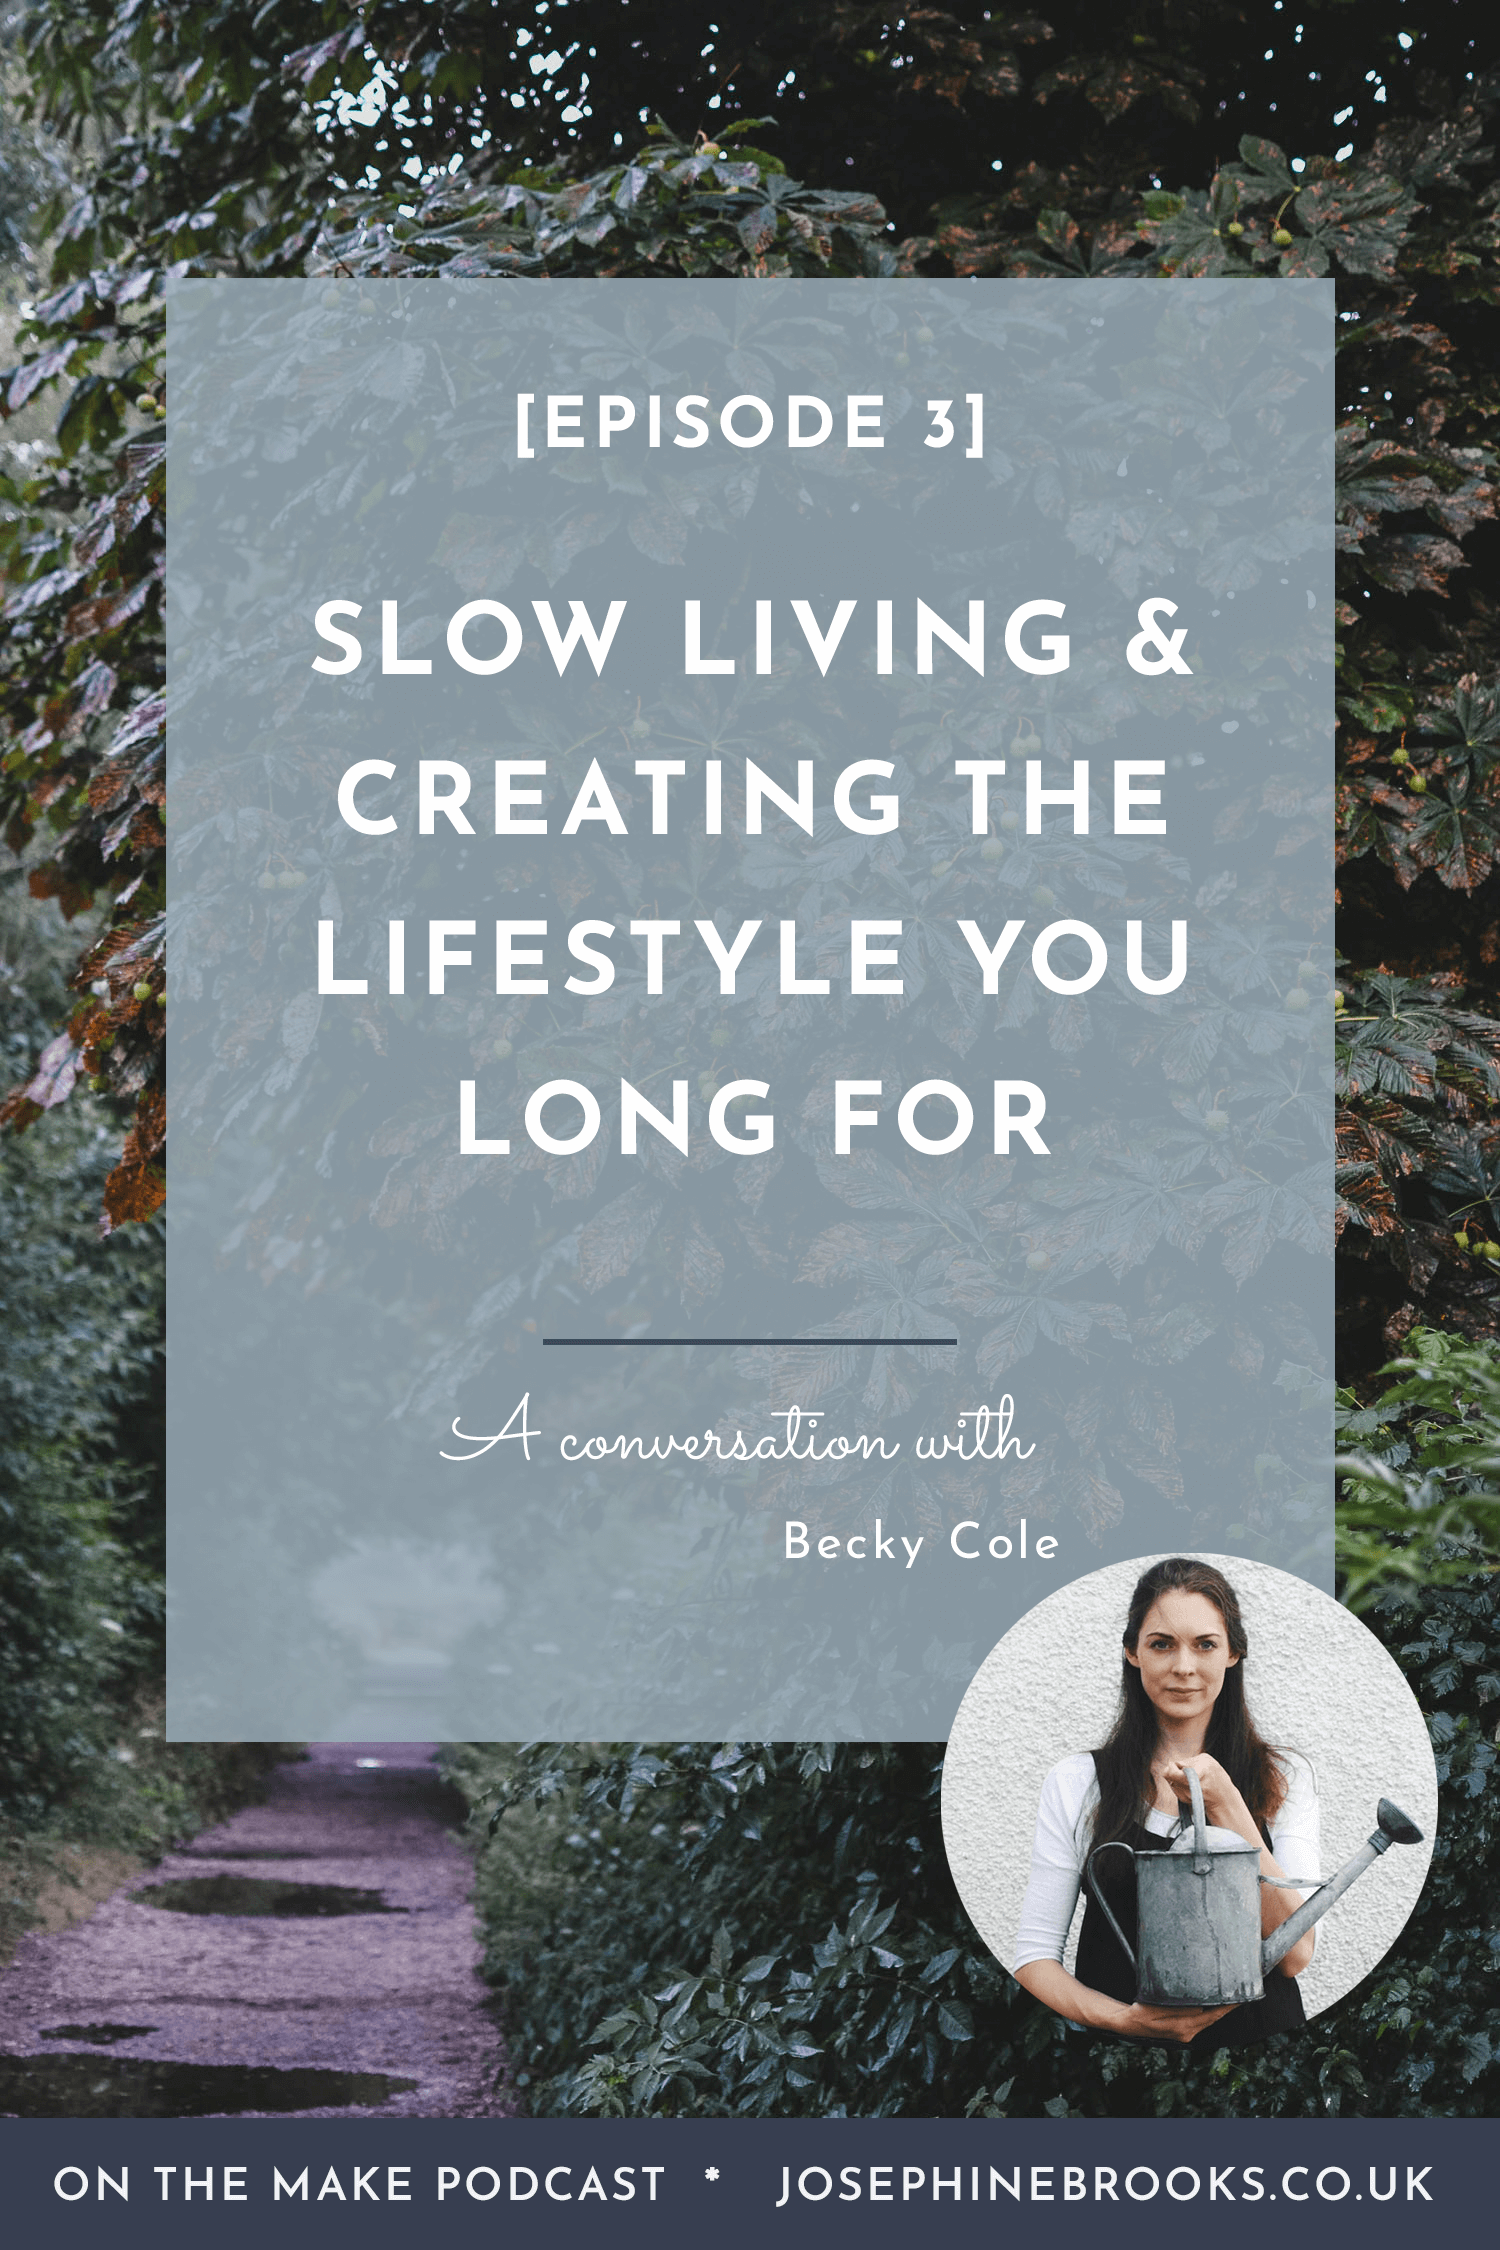 On The Make podcast episode 3 with Becky Cole - Low living and being intentional about creating the lifestyle you long for